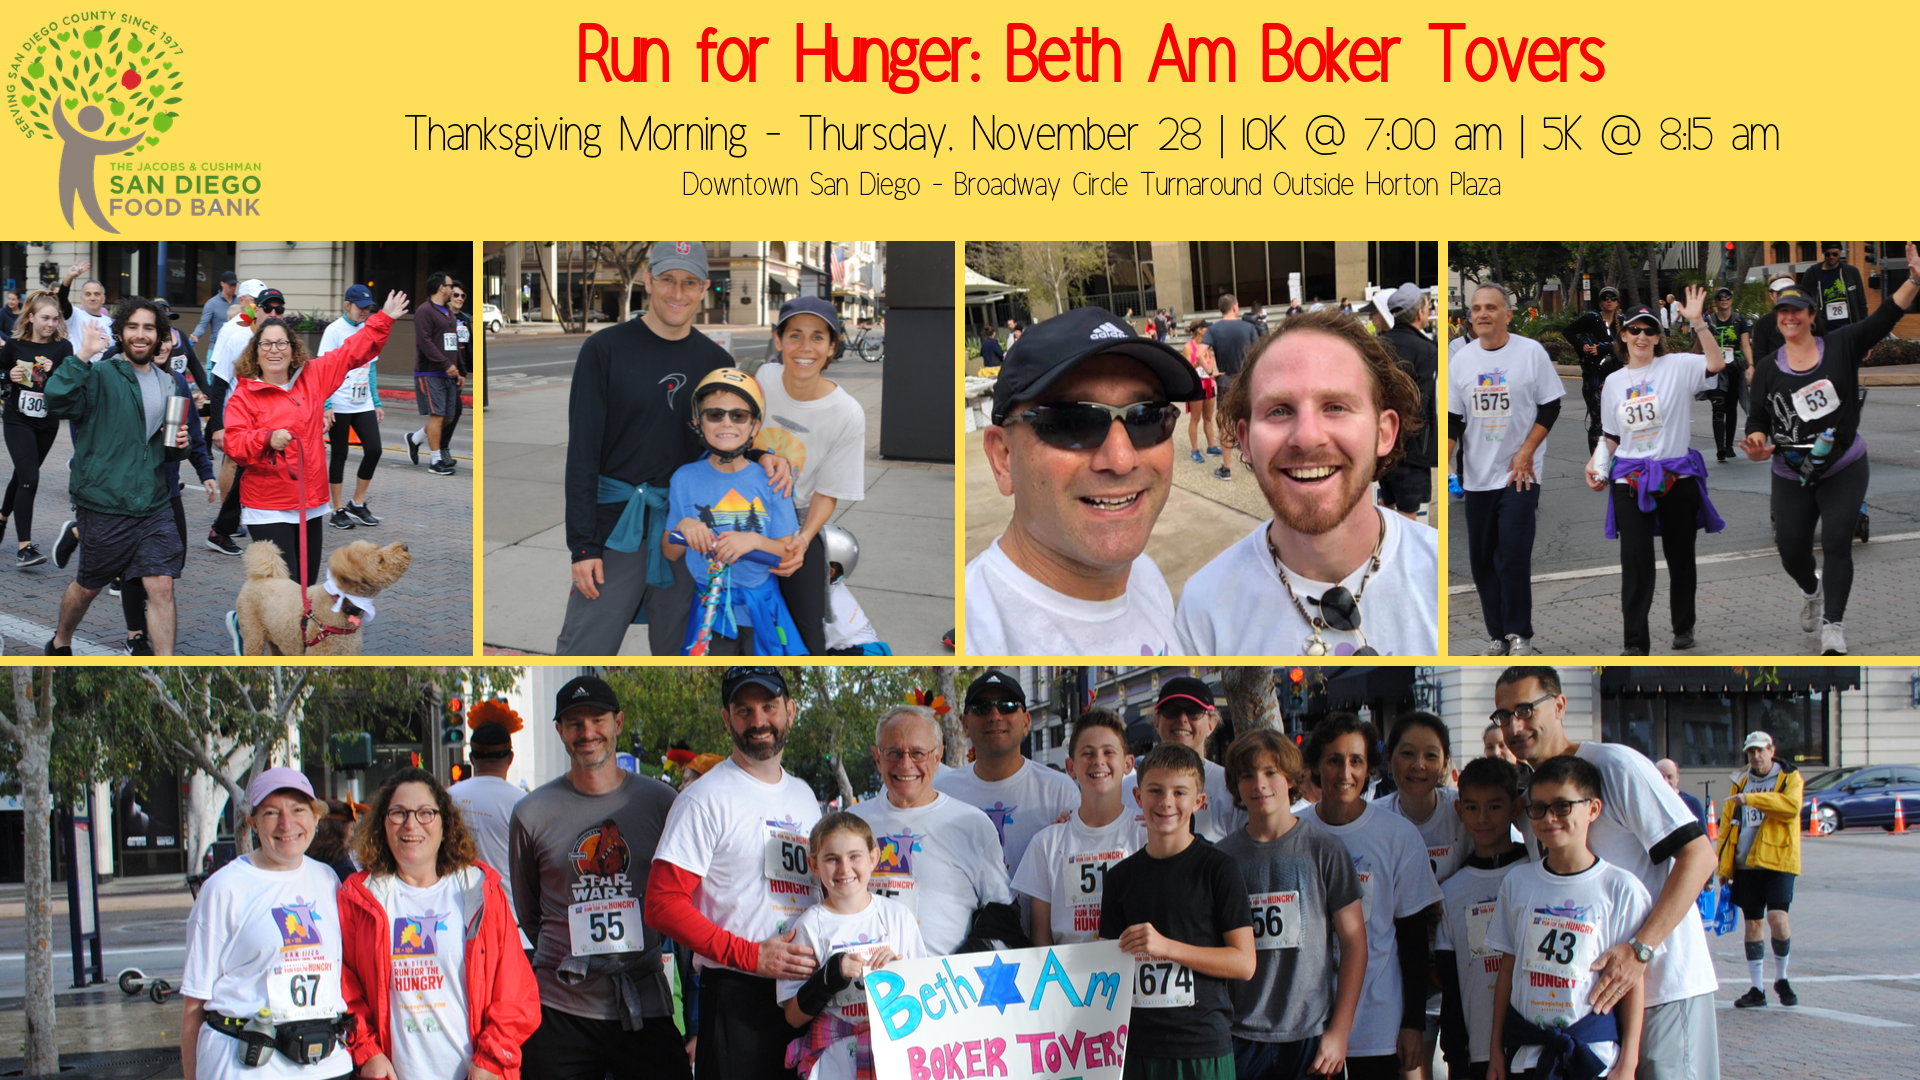 Banner Image for Beth Am Boker Tovers: Run For Hunger